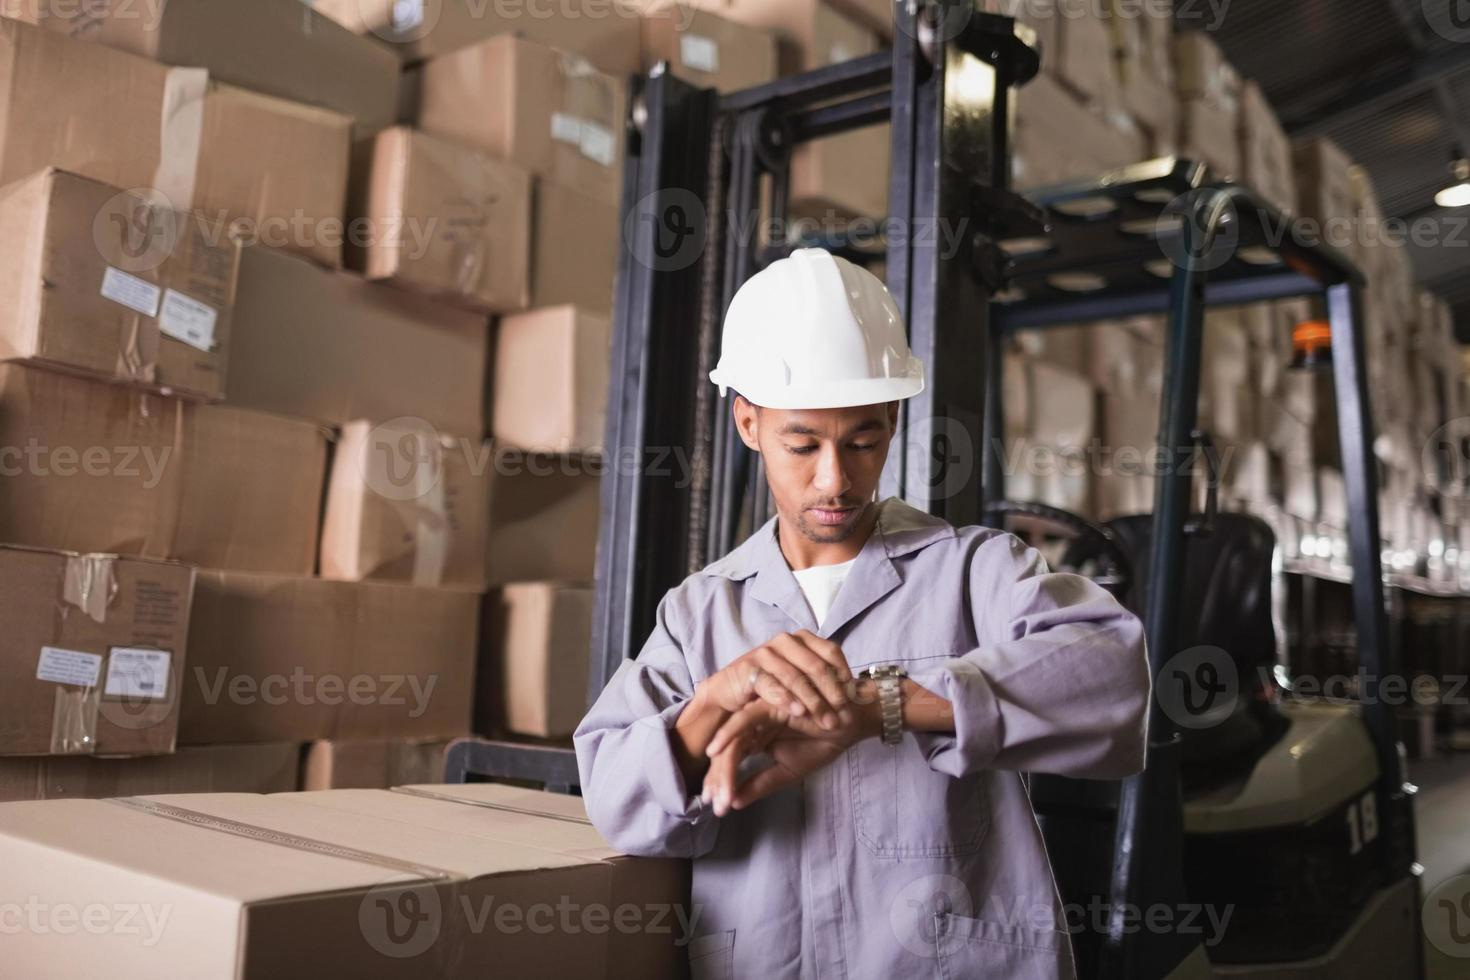 Warehouse worker checking time photo